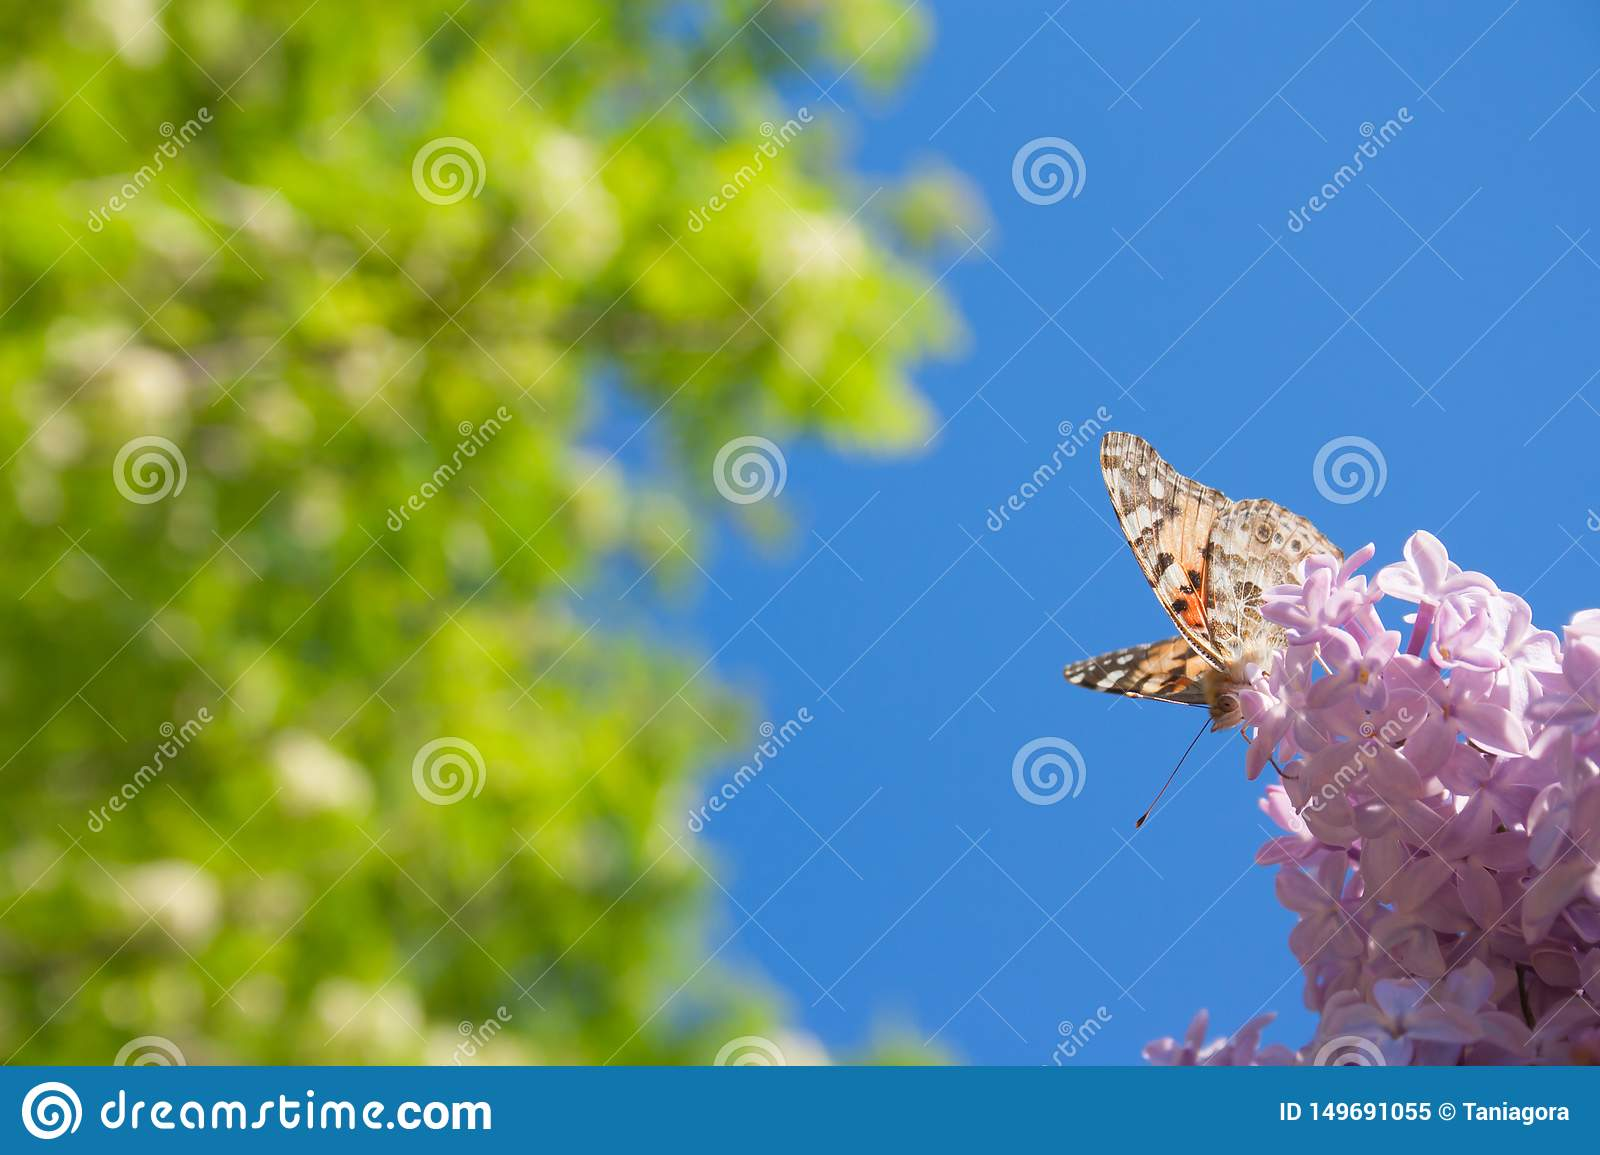 Lilac flowers in the green garden background in a sunny day with one orange butterfly Aglais urticae